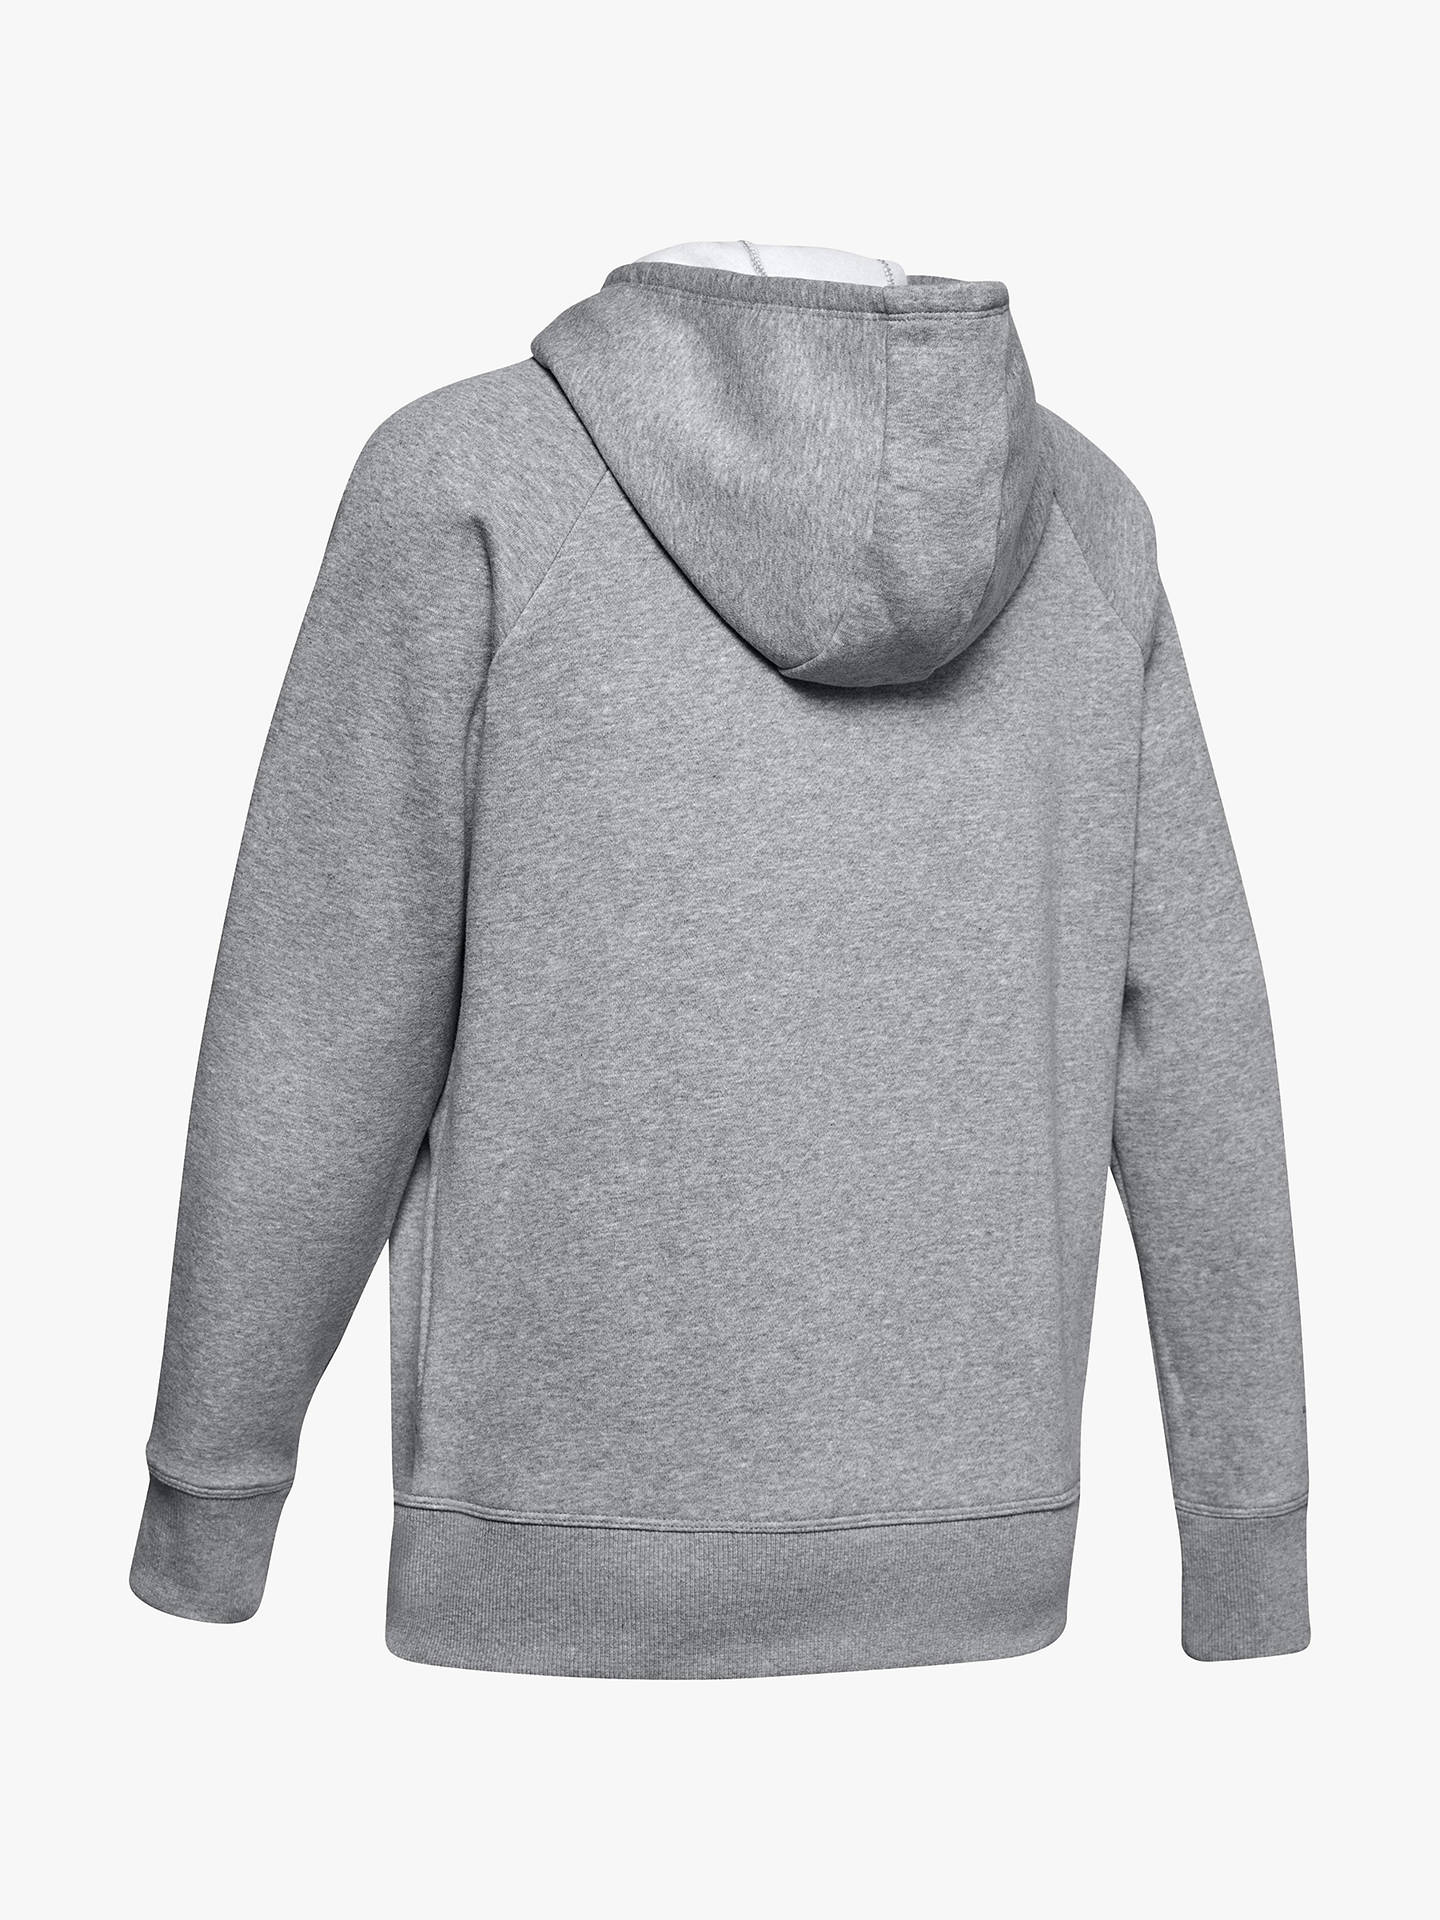 93755a421 ... Buy Under Armour Rival Fleece Sportstyle Full Zip Training Hoodie,  Steel, XS Online at